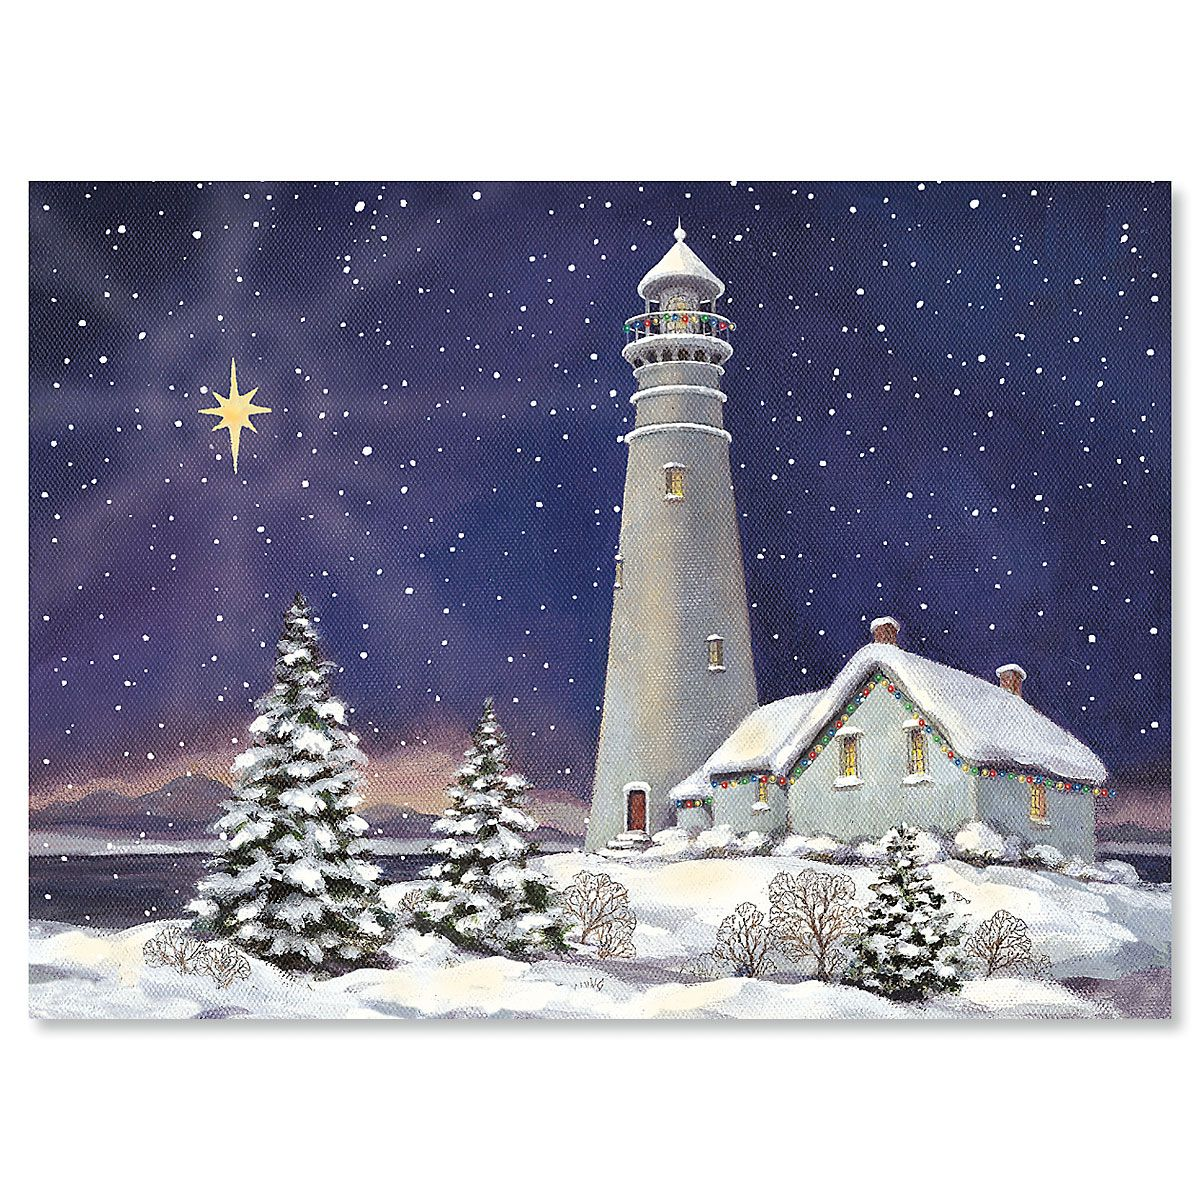 December Light Nonpersonalized Christmas Cards - Set of 18